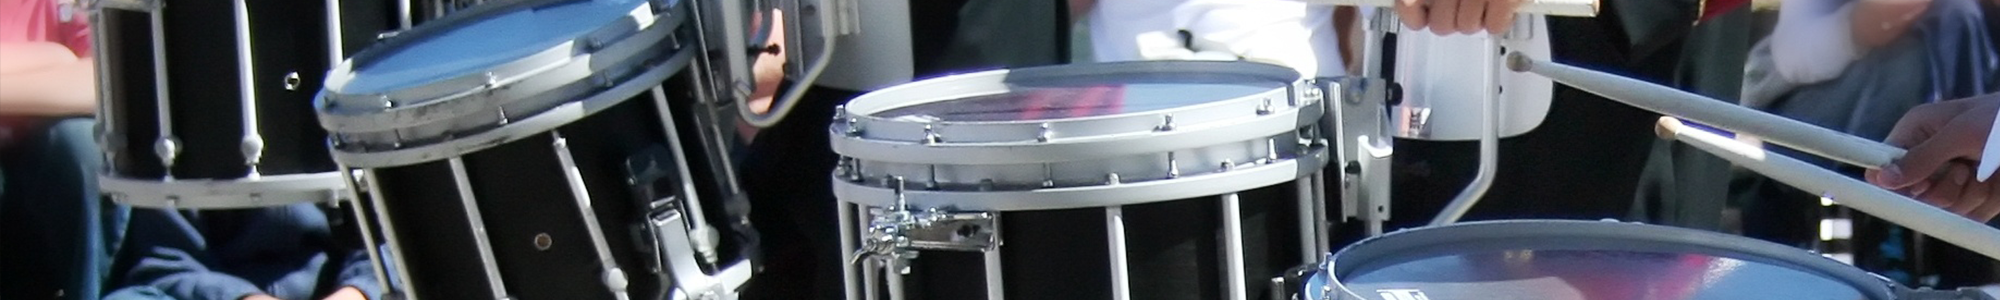 Drumming Products